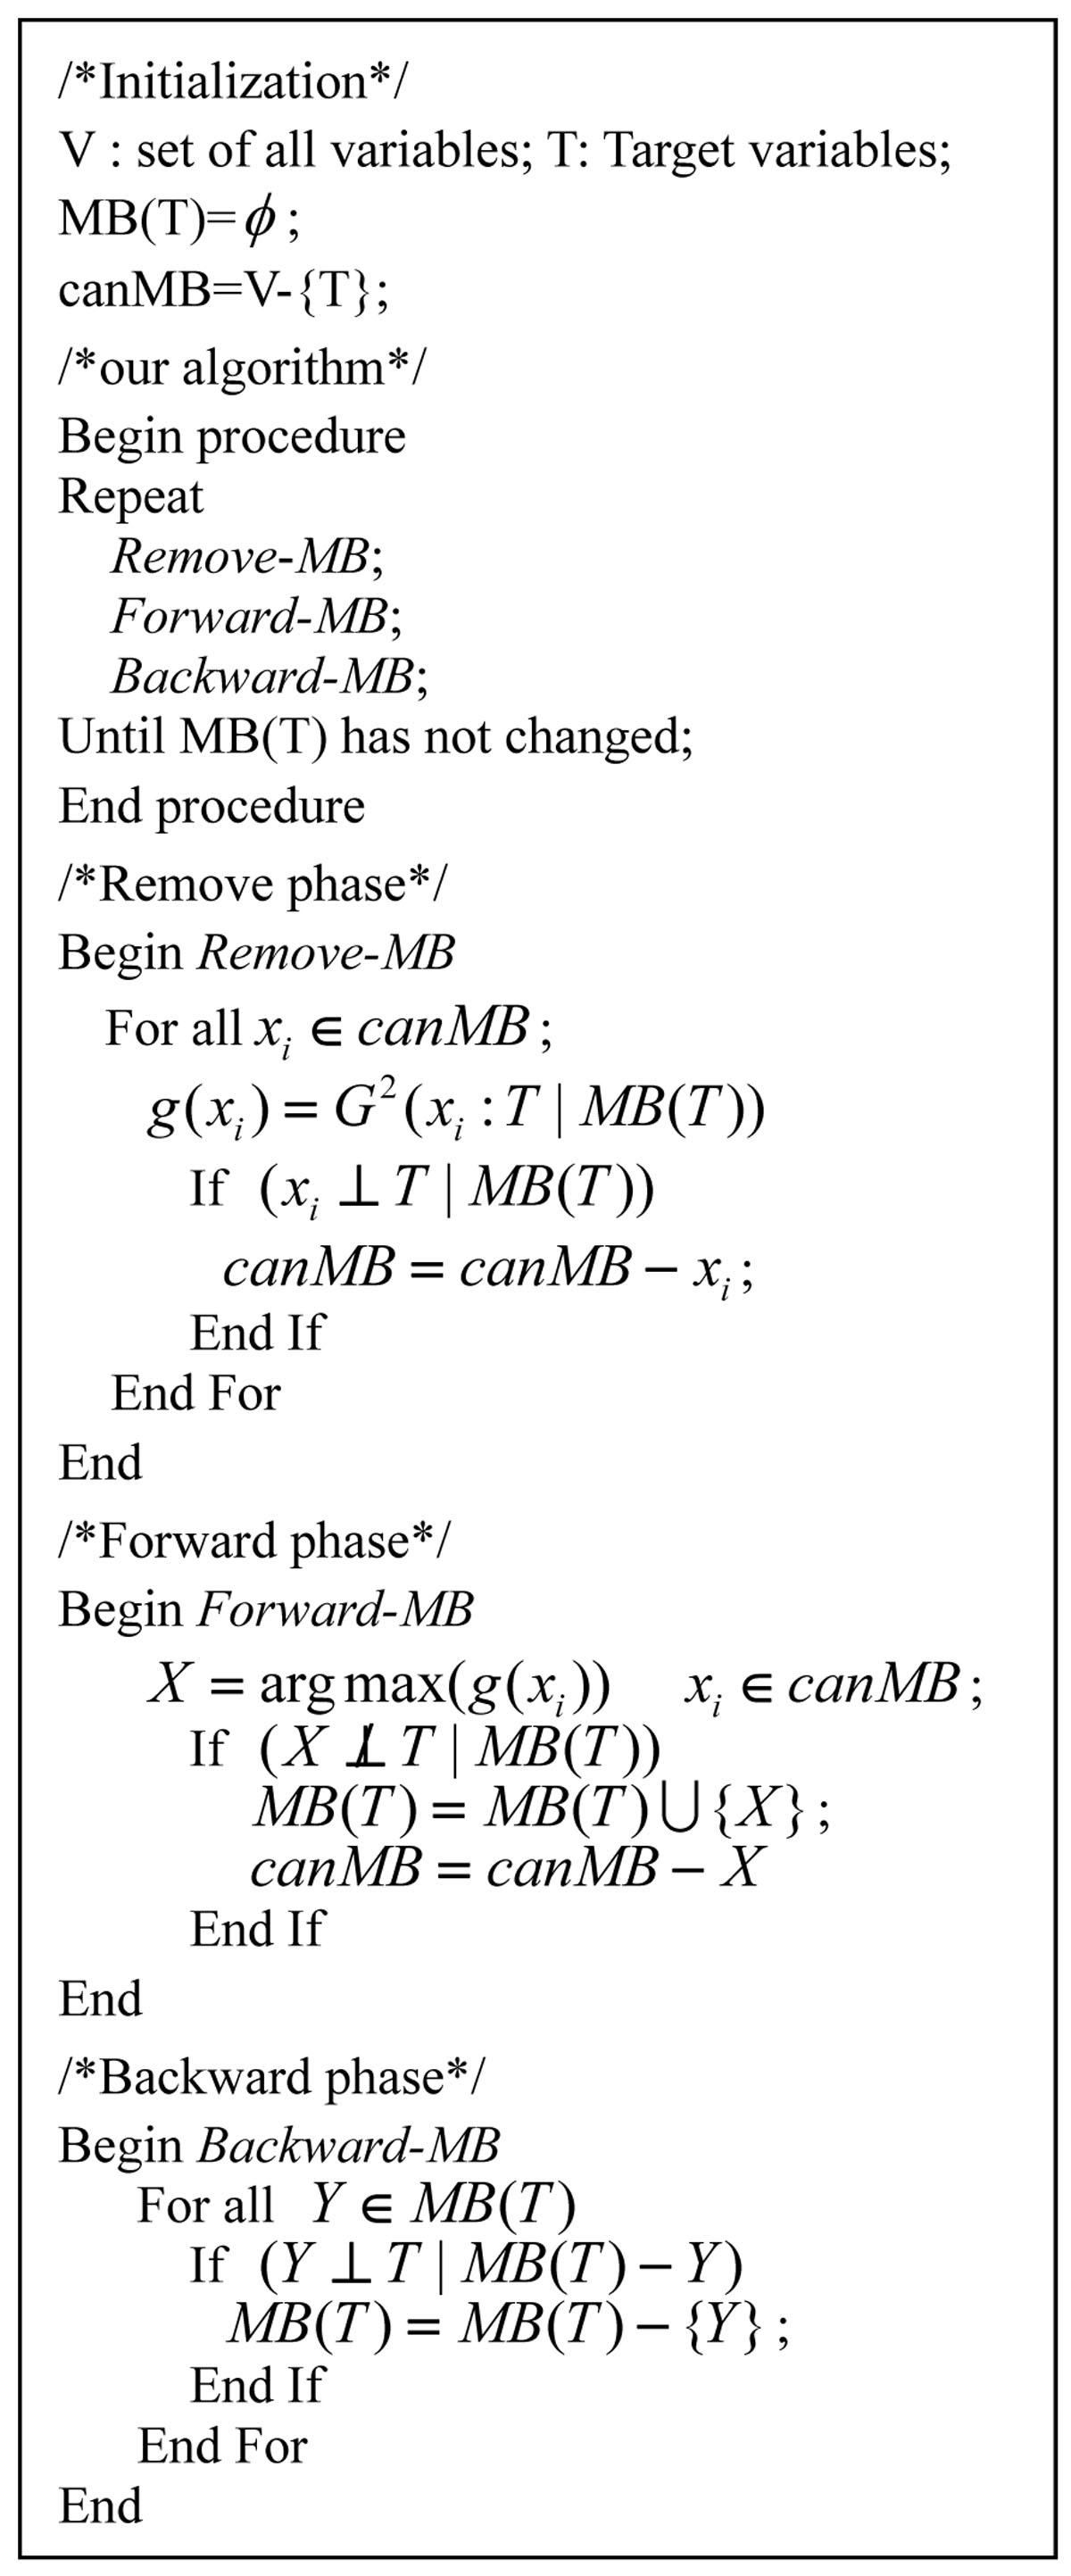 https://static-content.springer.com/image/art%3A10.1186%2F1471-2105-12-S12-S3/MediaObjects/12859_2011_Article_4904_Fig6_HTML.jpg